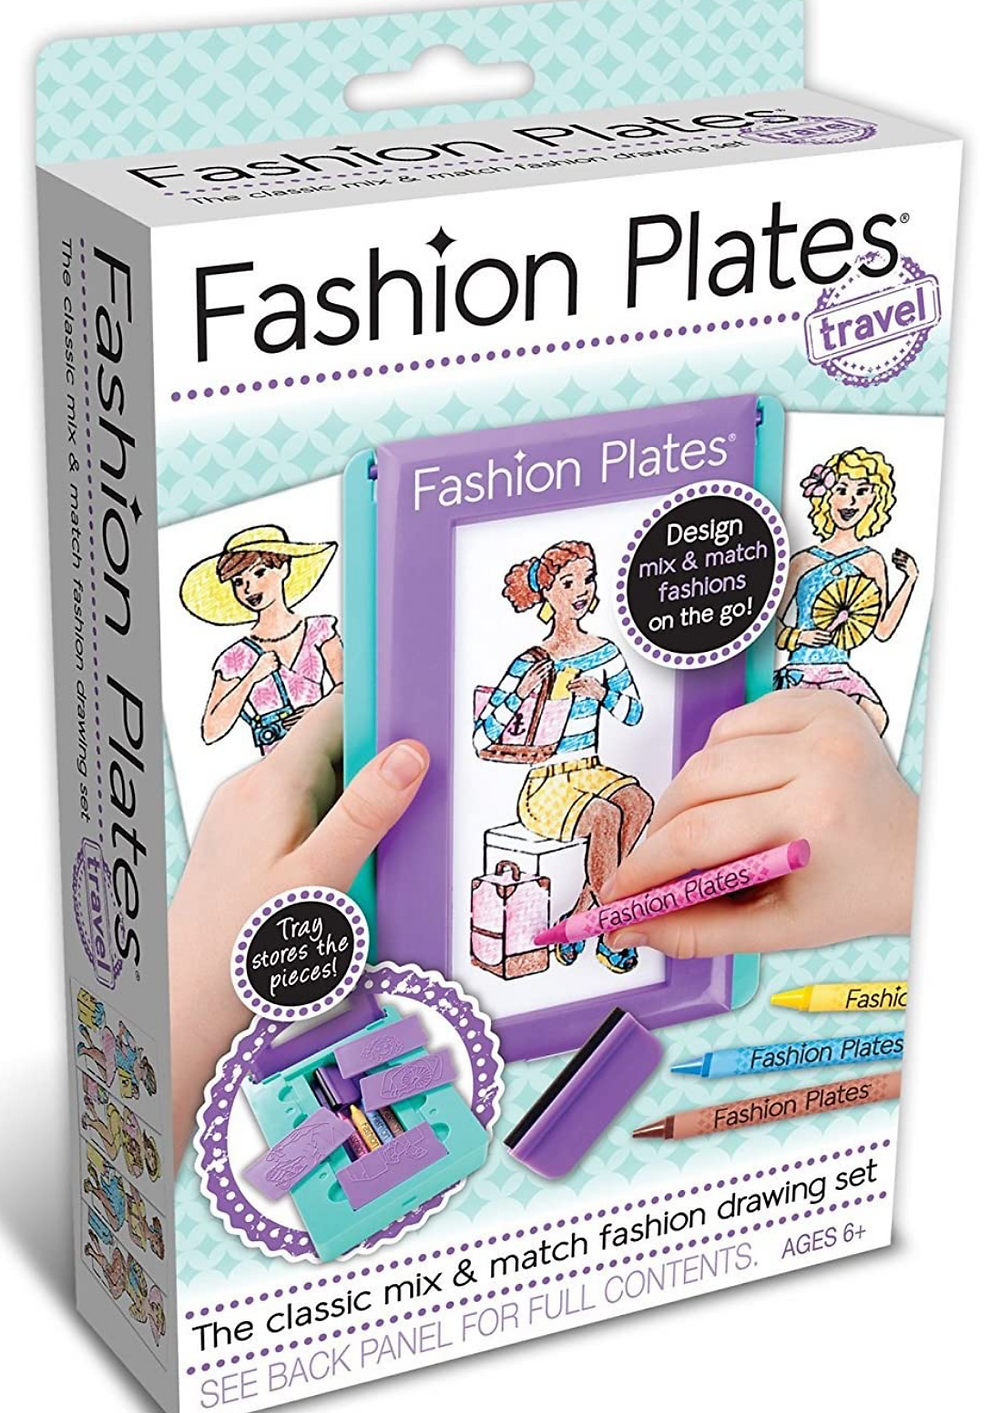 Fashion Plates Design mix and match fashions on the go